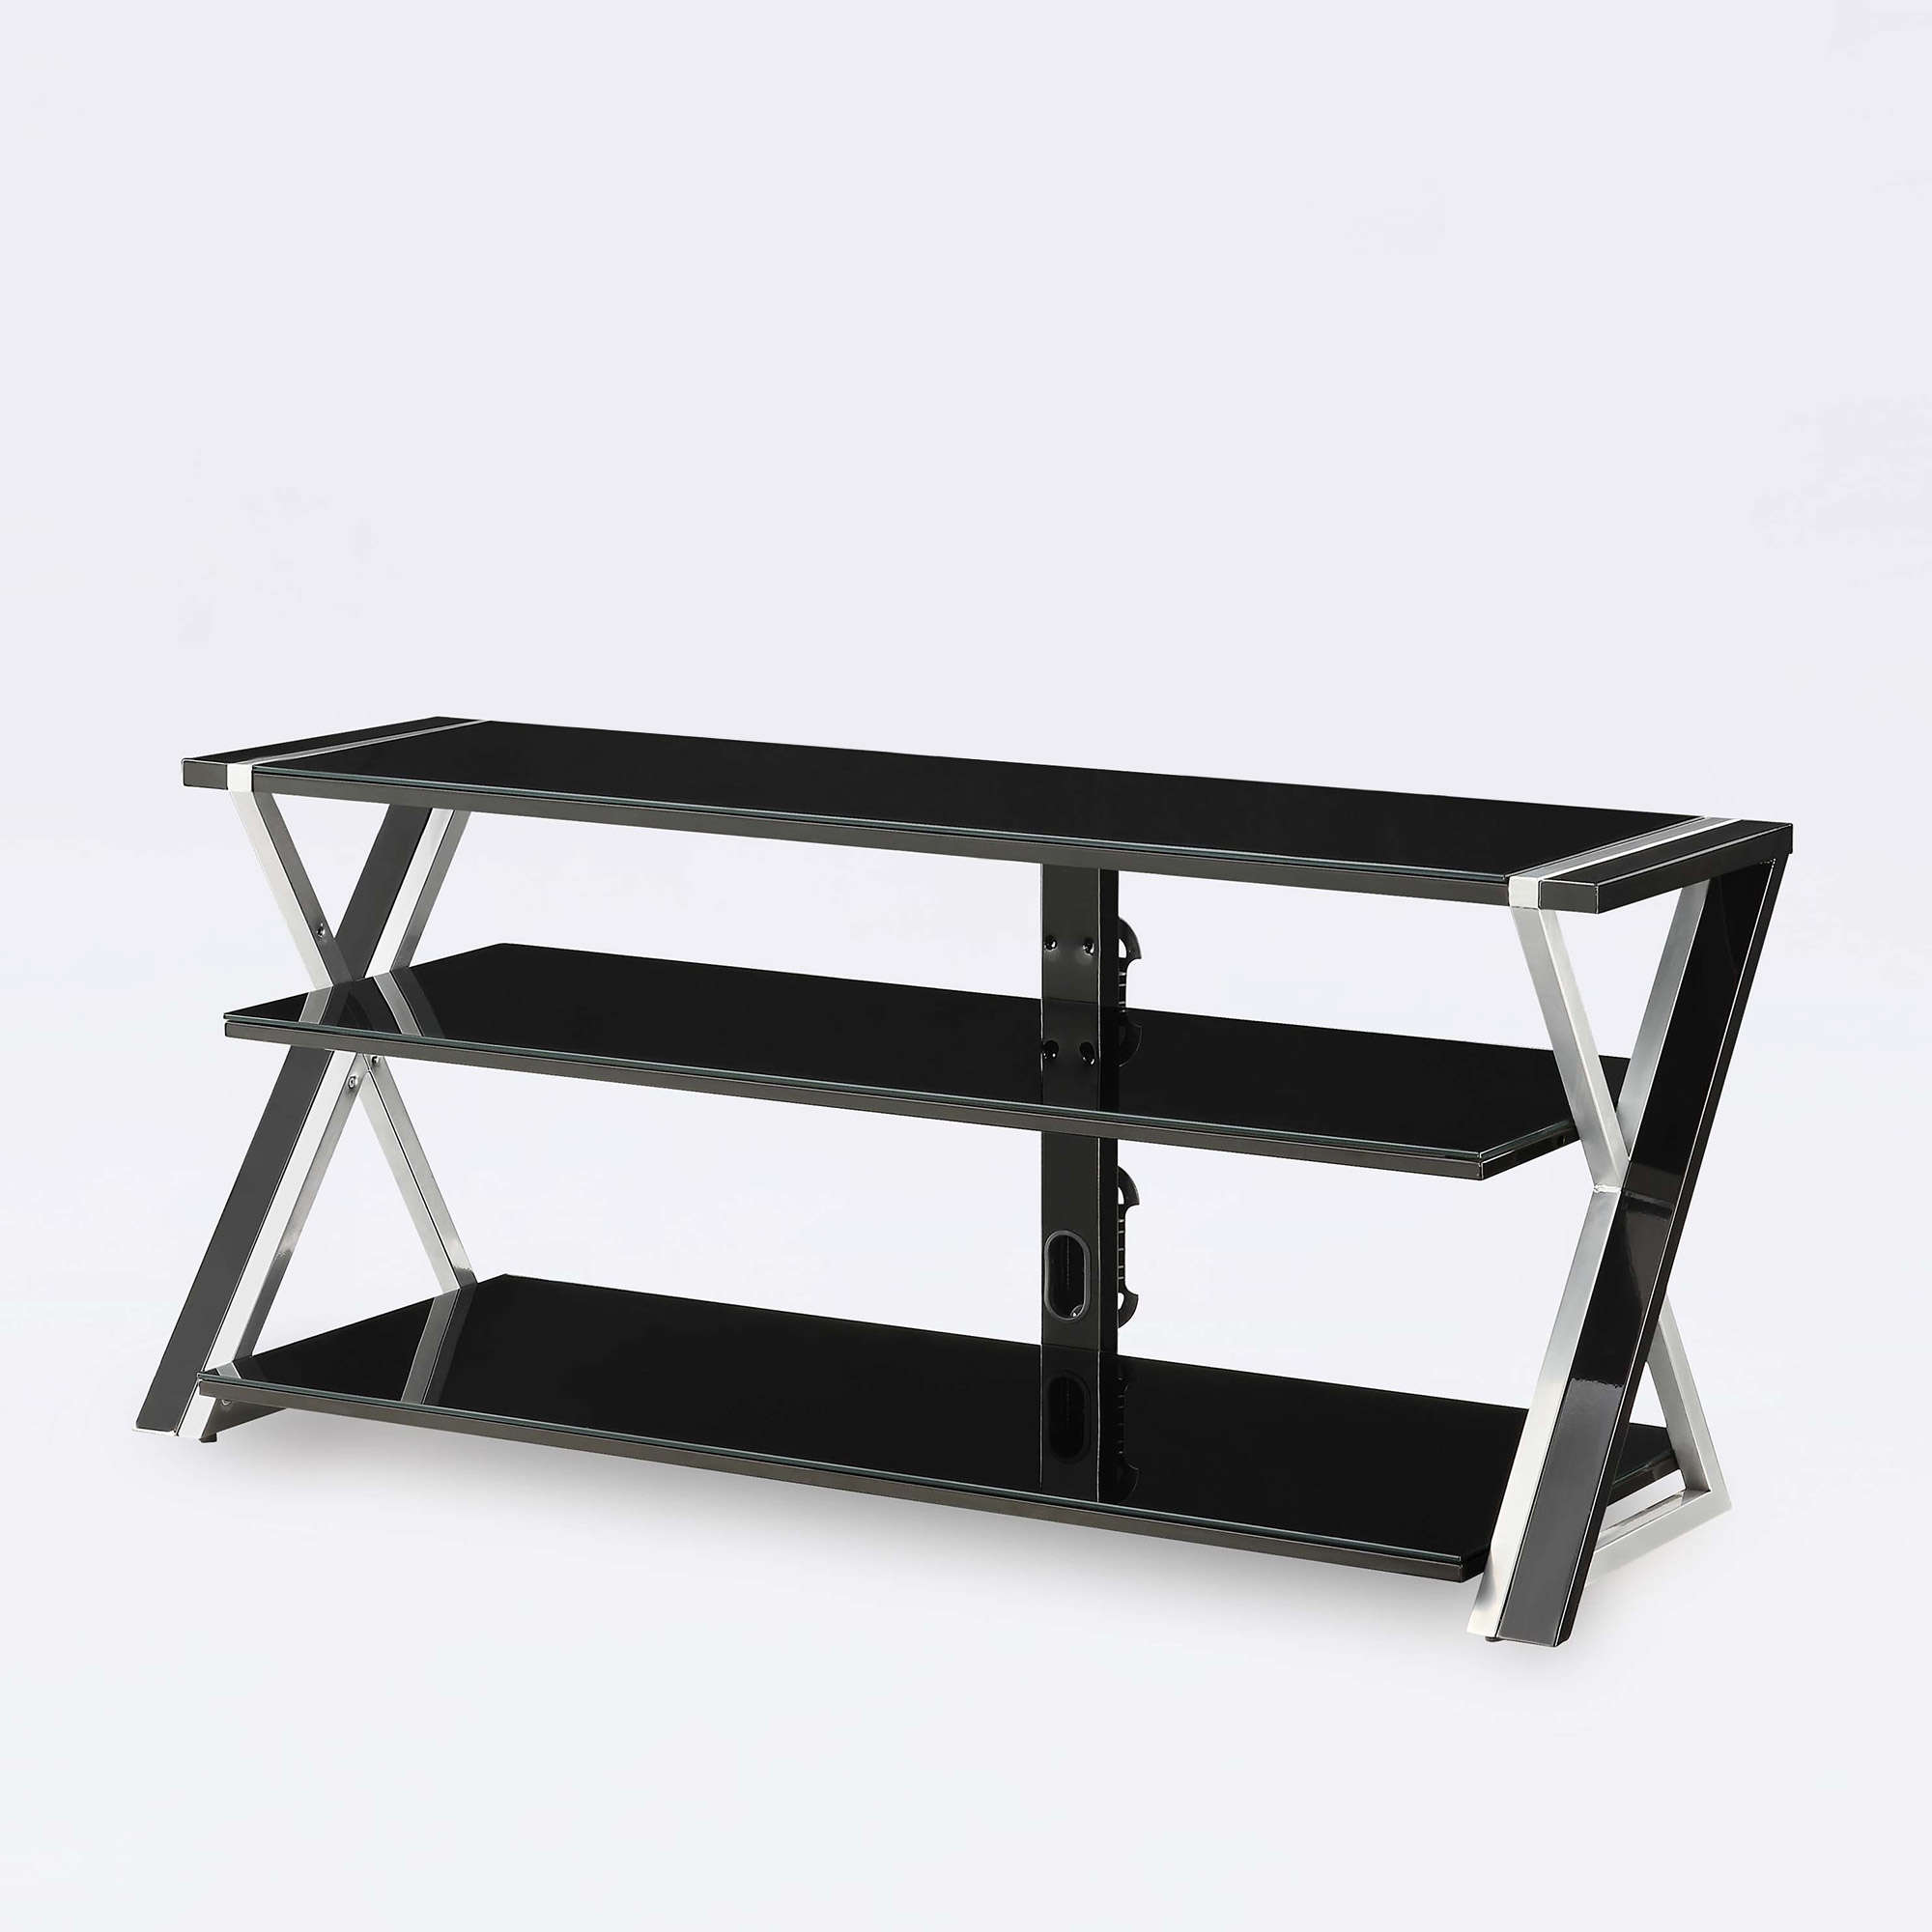 "Whalen Black TV Stand for 65"" Flat Panel TVs with Tempered Glass"